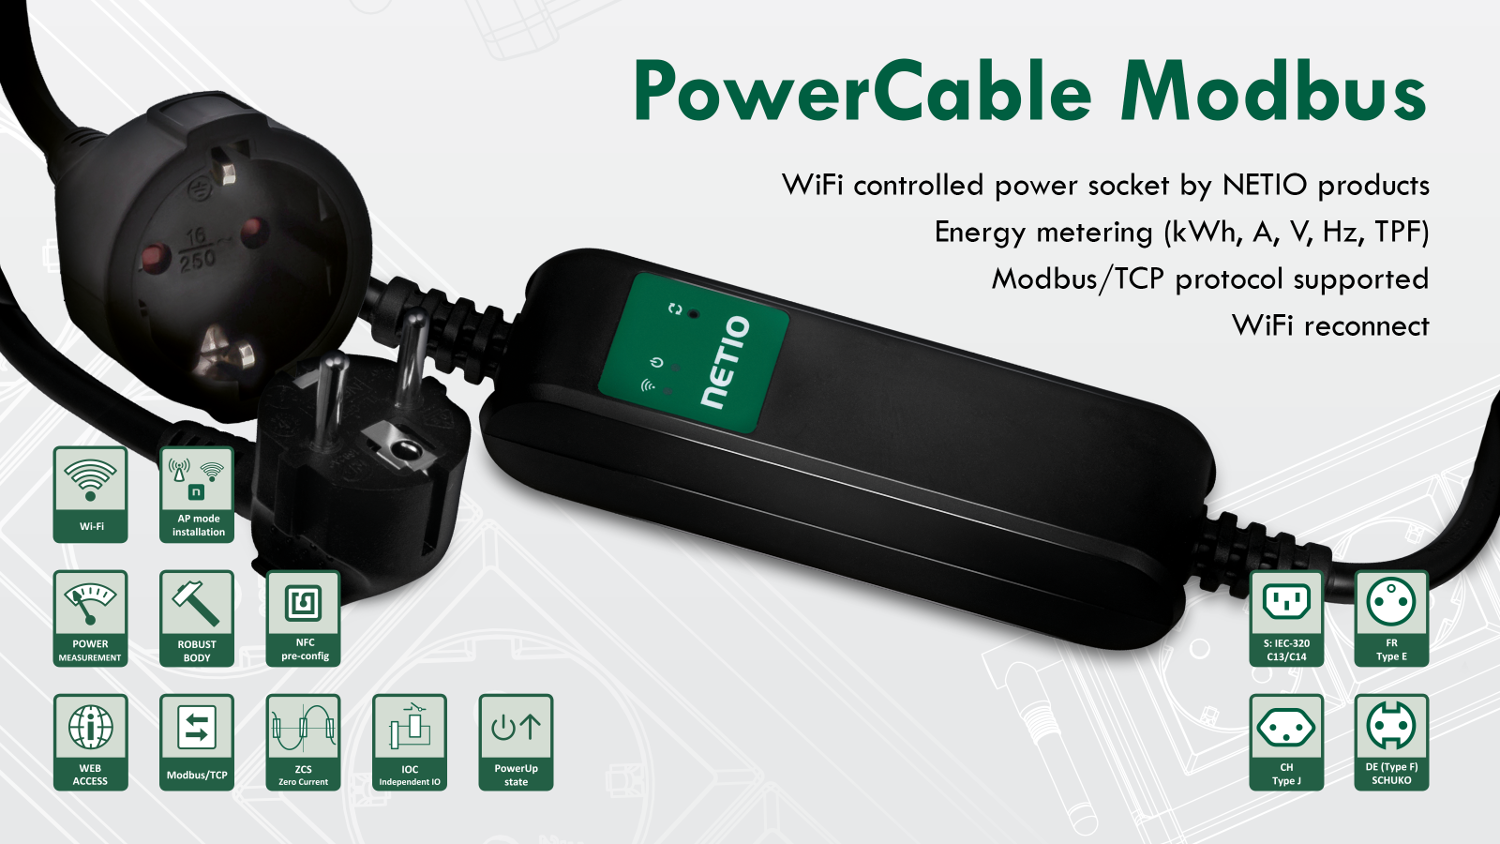 NETIO PowerCable Modbus smart WiFi power socket controlled over M2M API Modbus